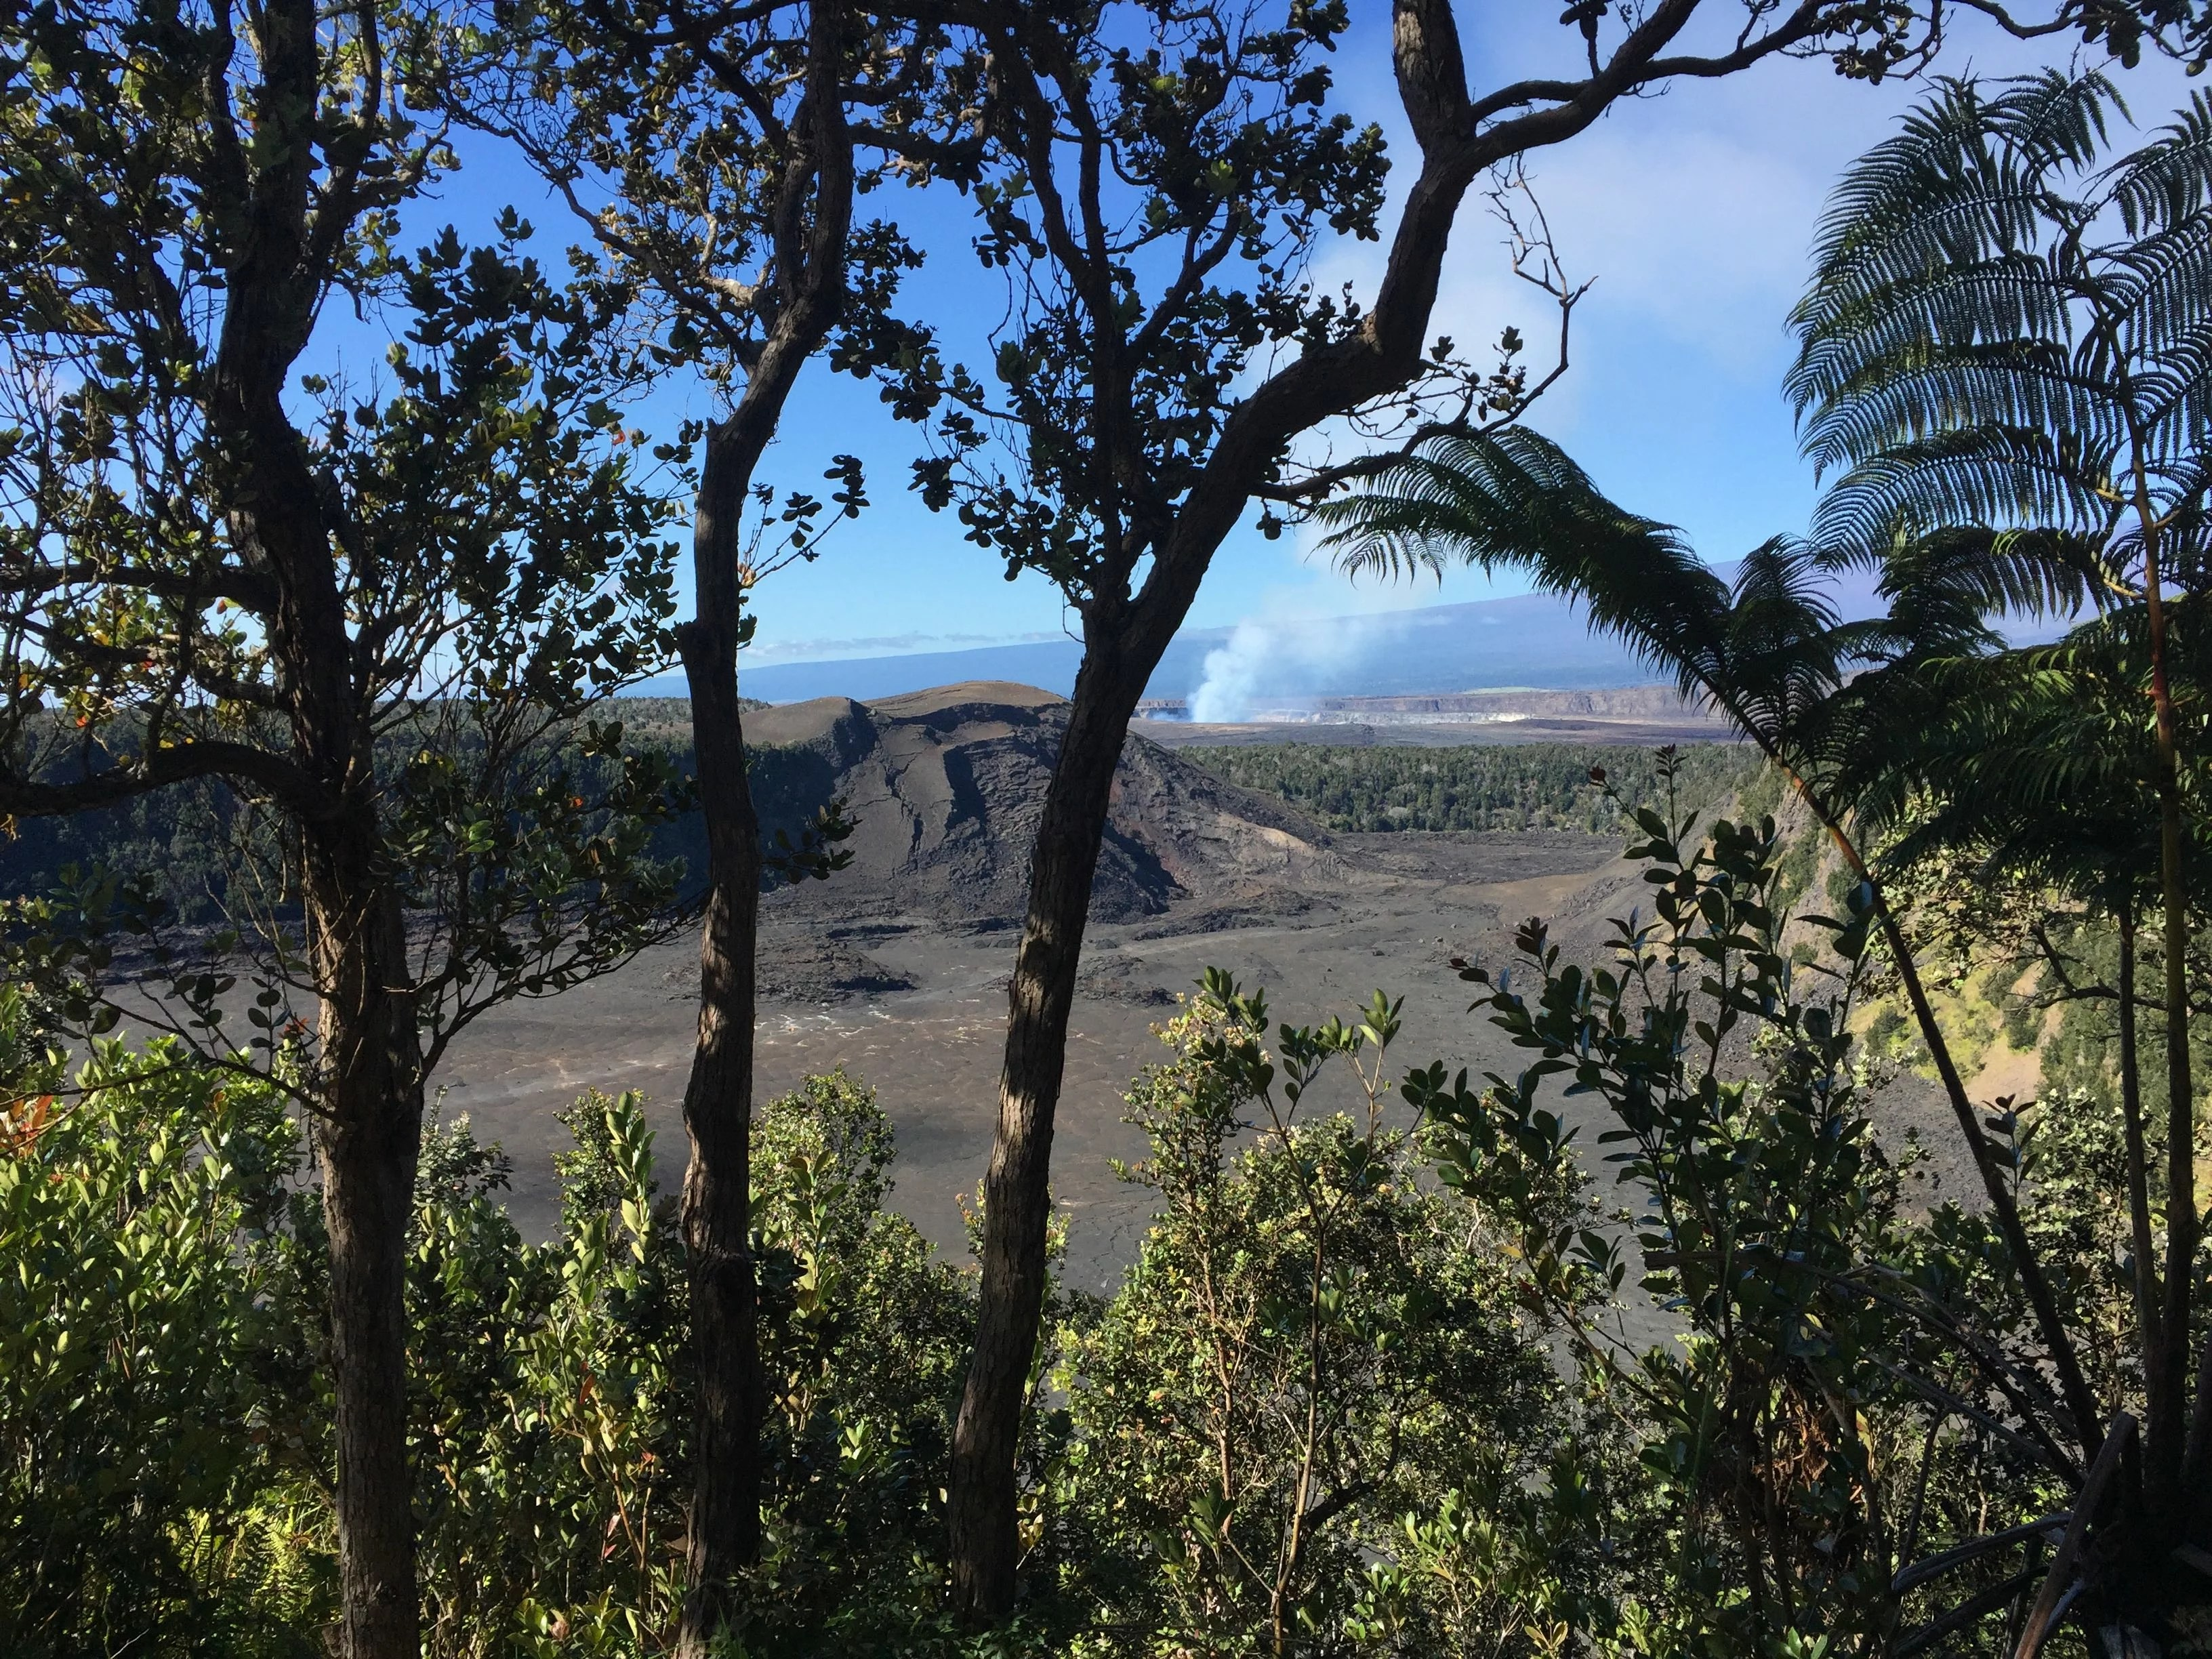 across the crater to the caldera